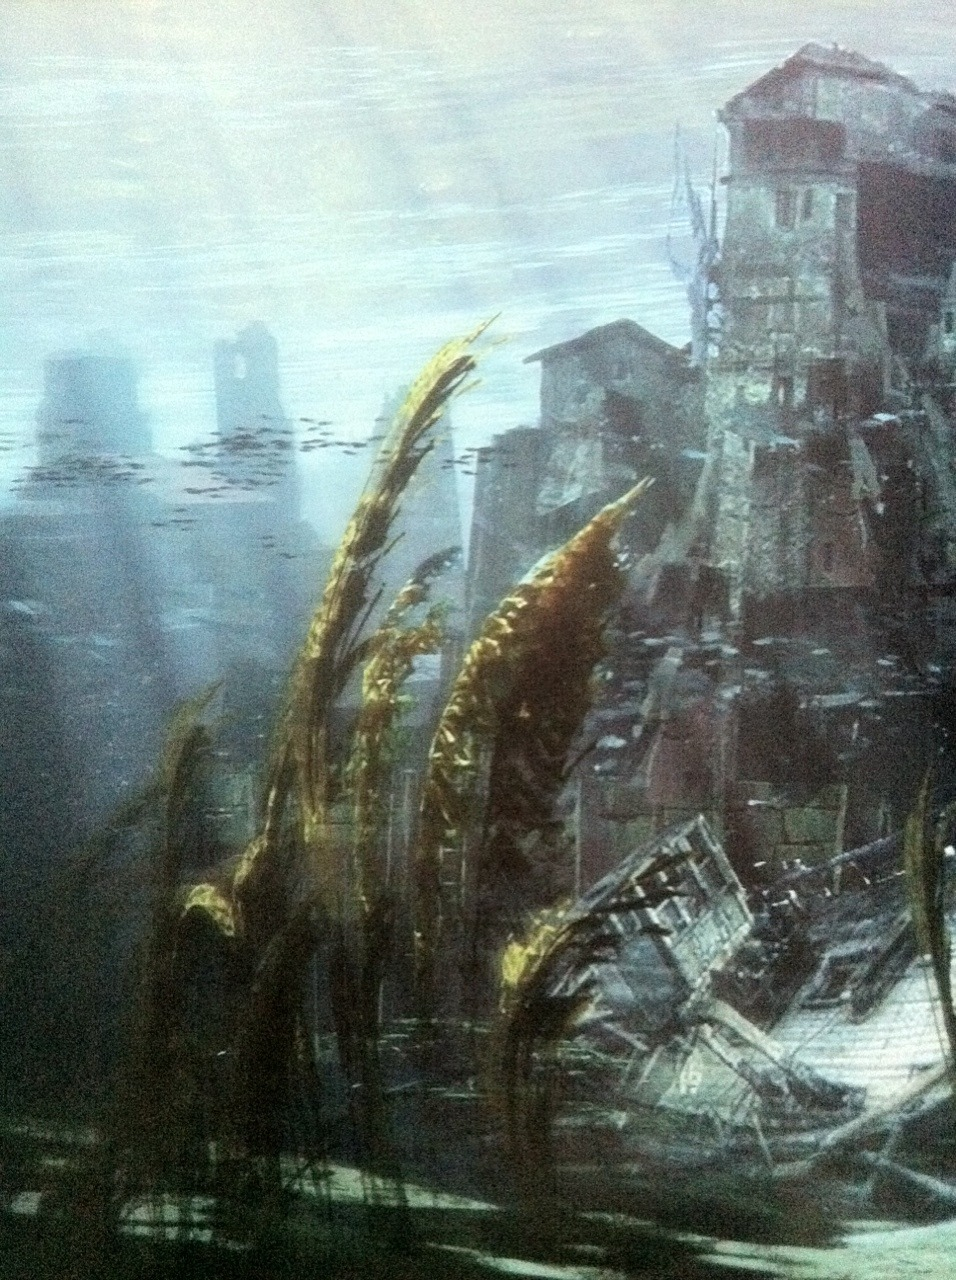 Uncharted 4: A Thief's End Concept Art Emerges 3